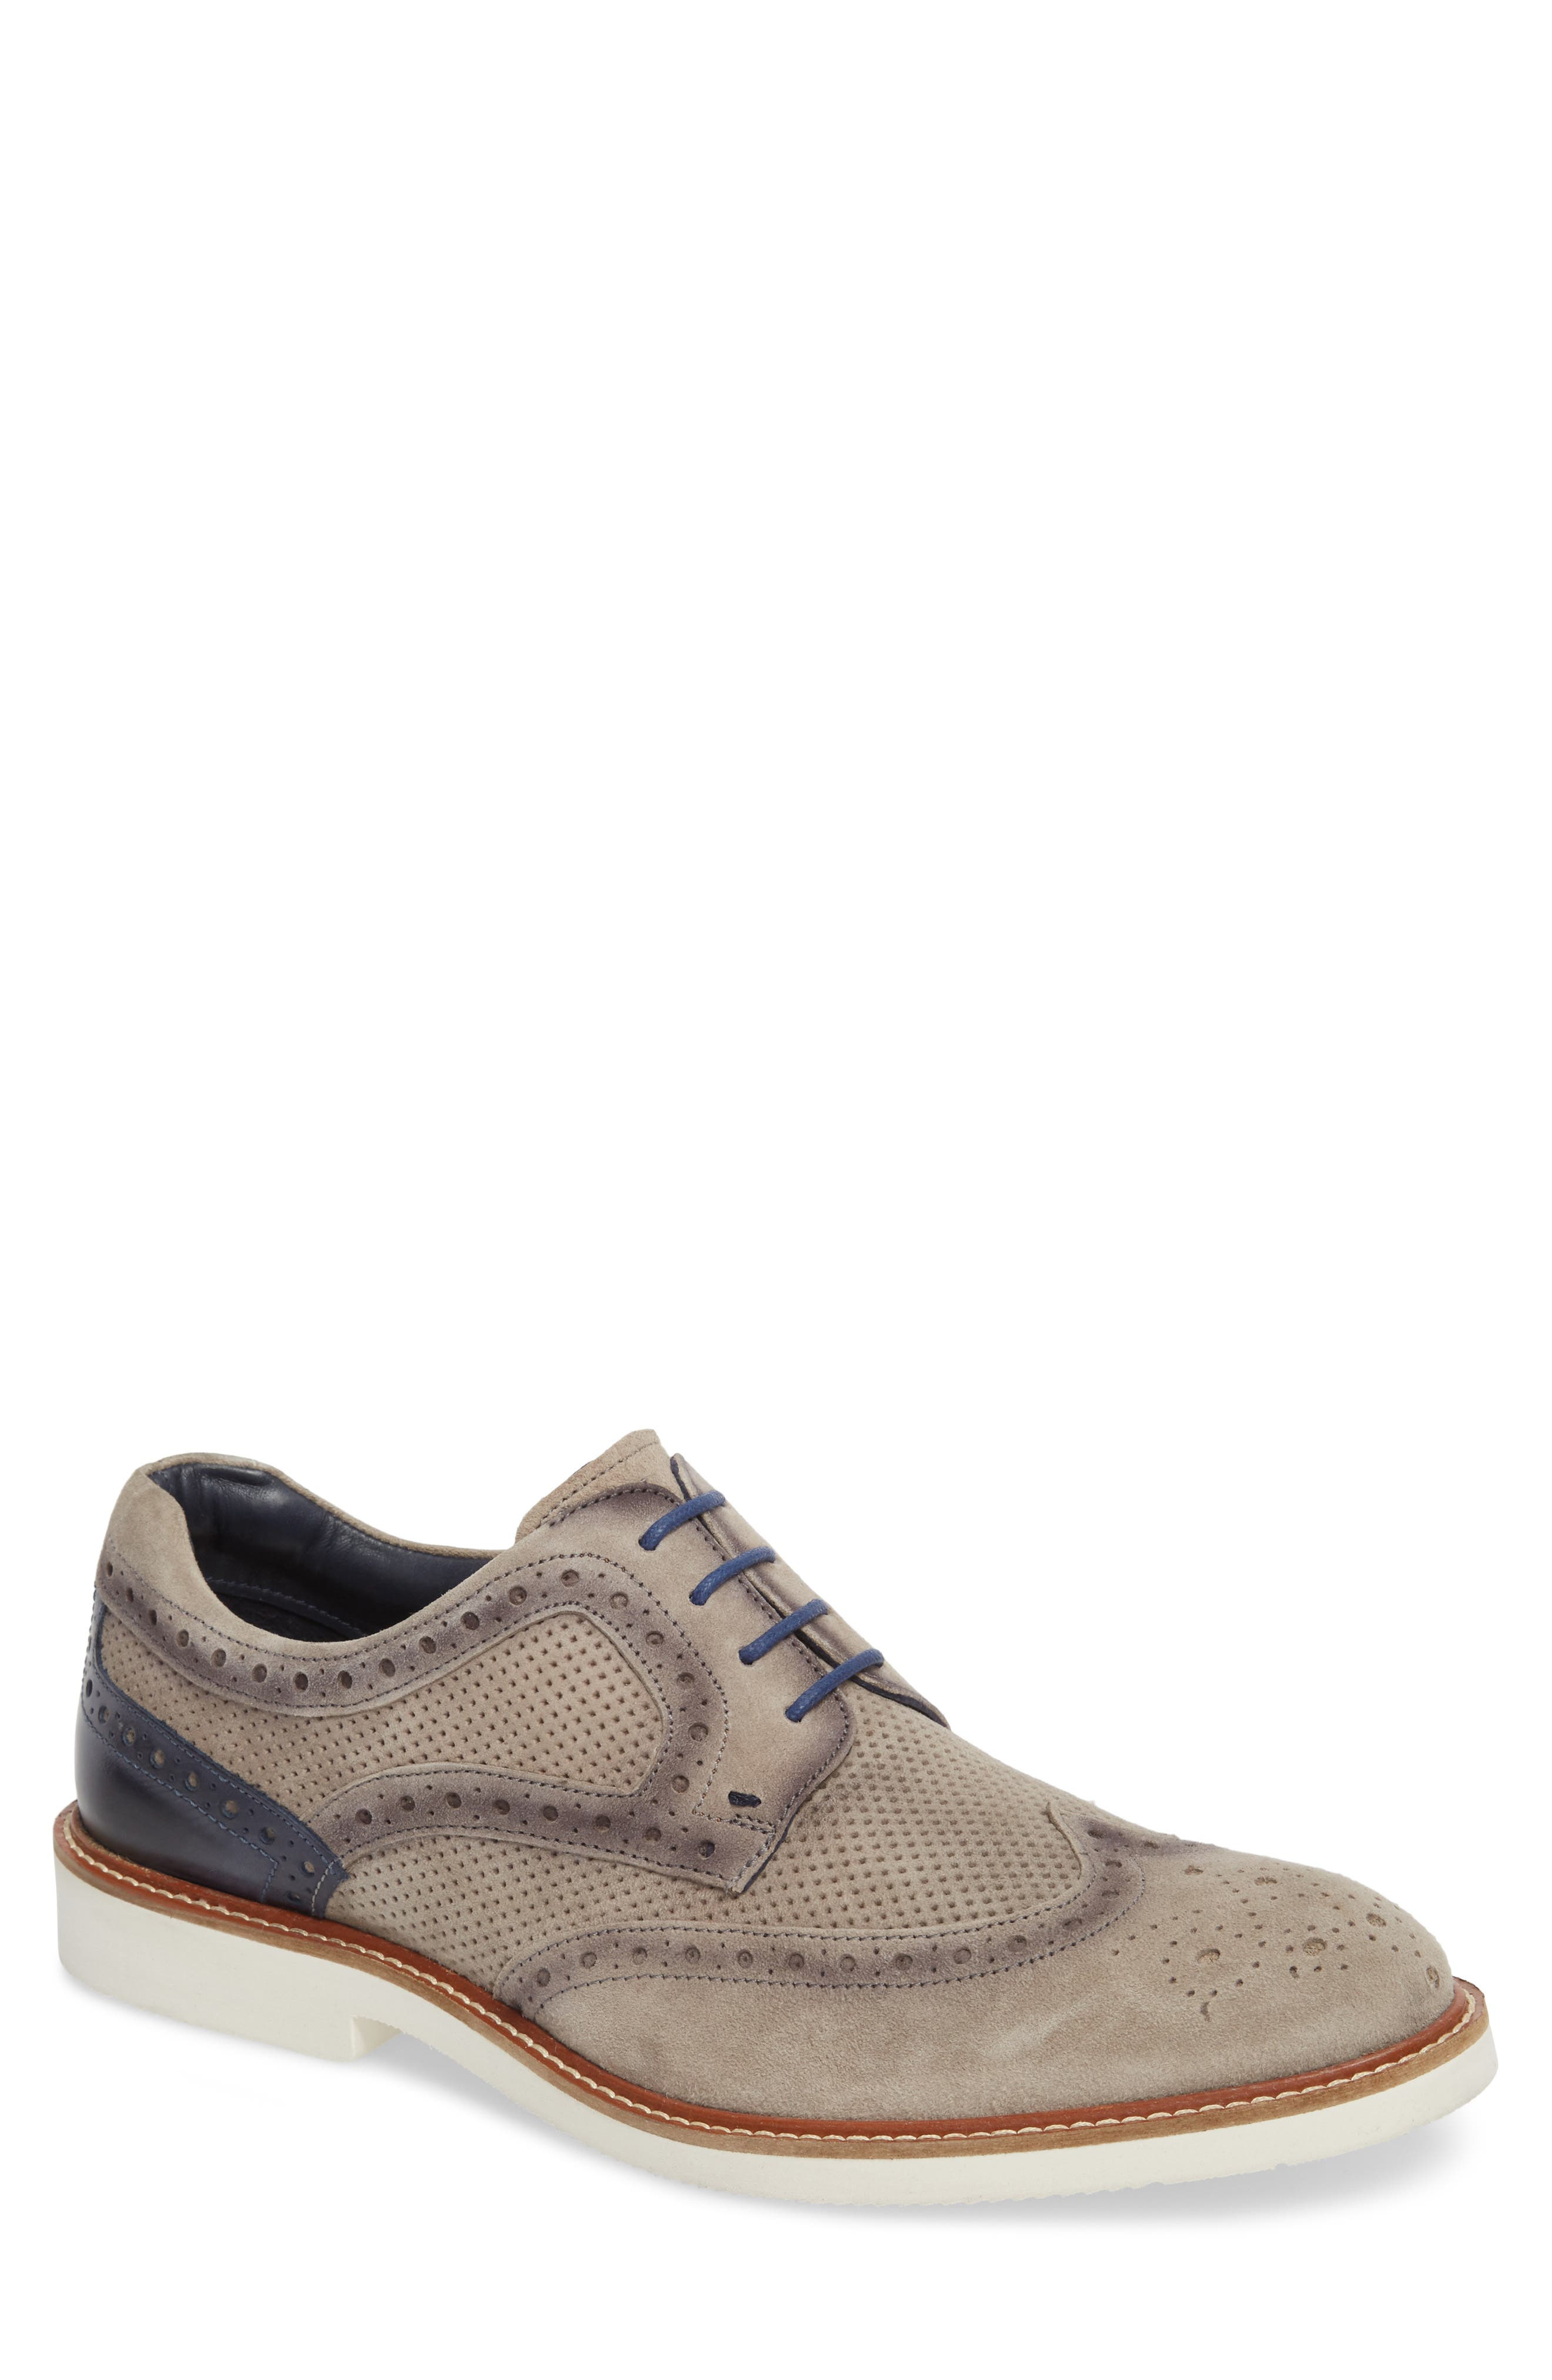 Shaw Perforated Wingtip Derby,                             Main thumbnail 1, color,                             Grey Suede